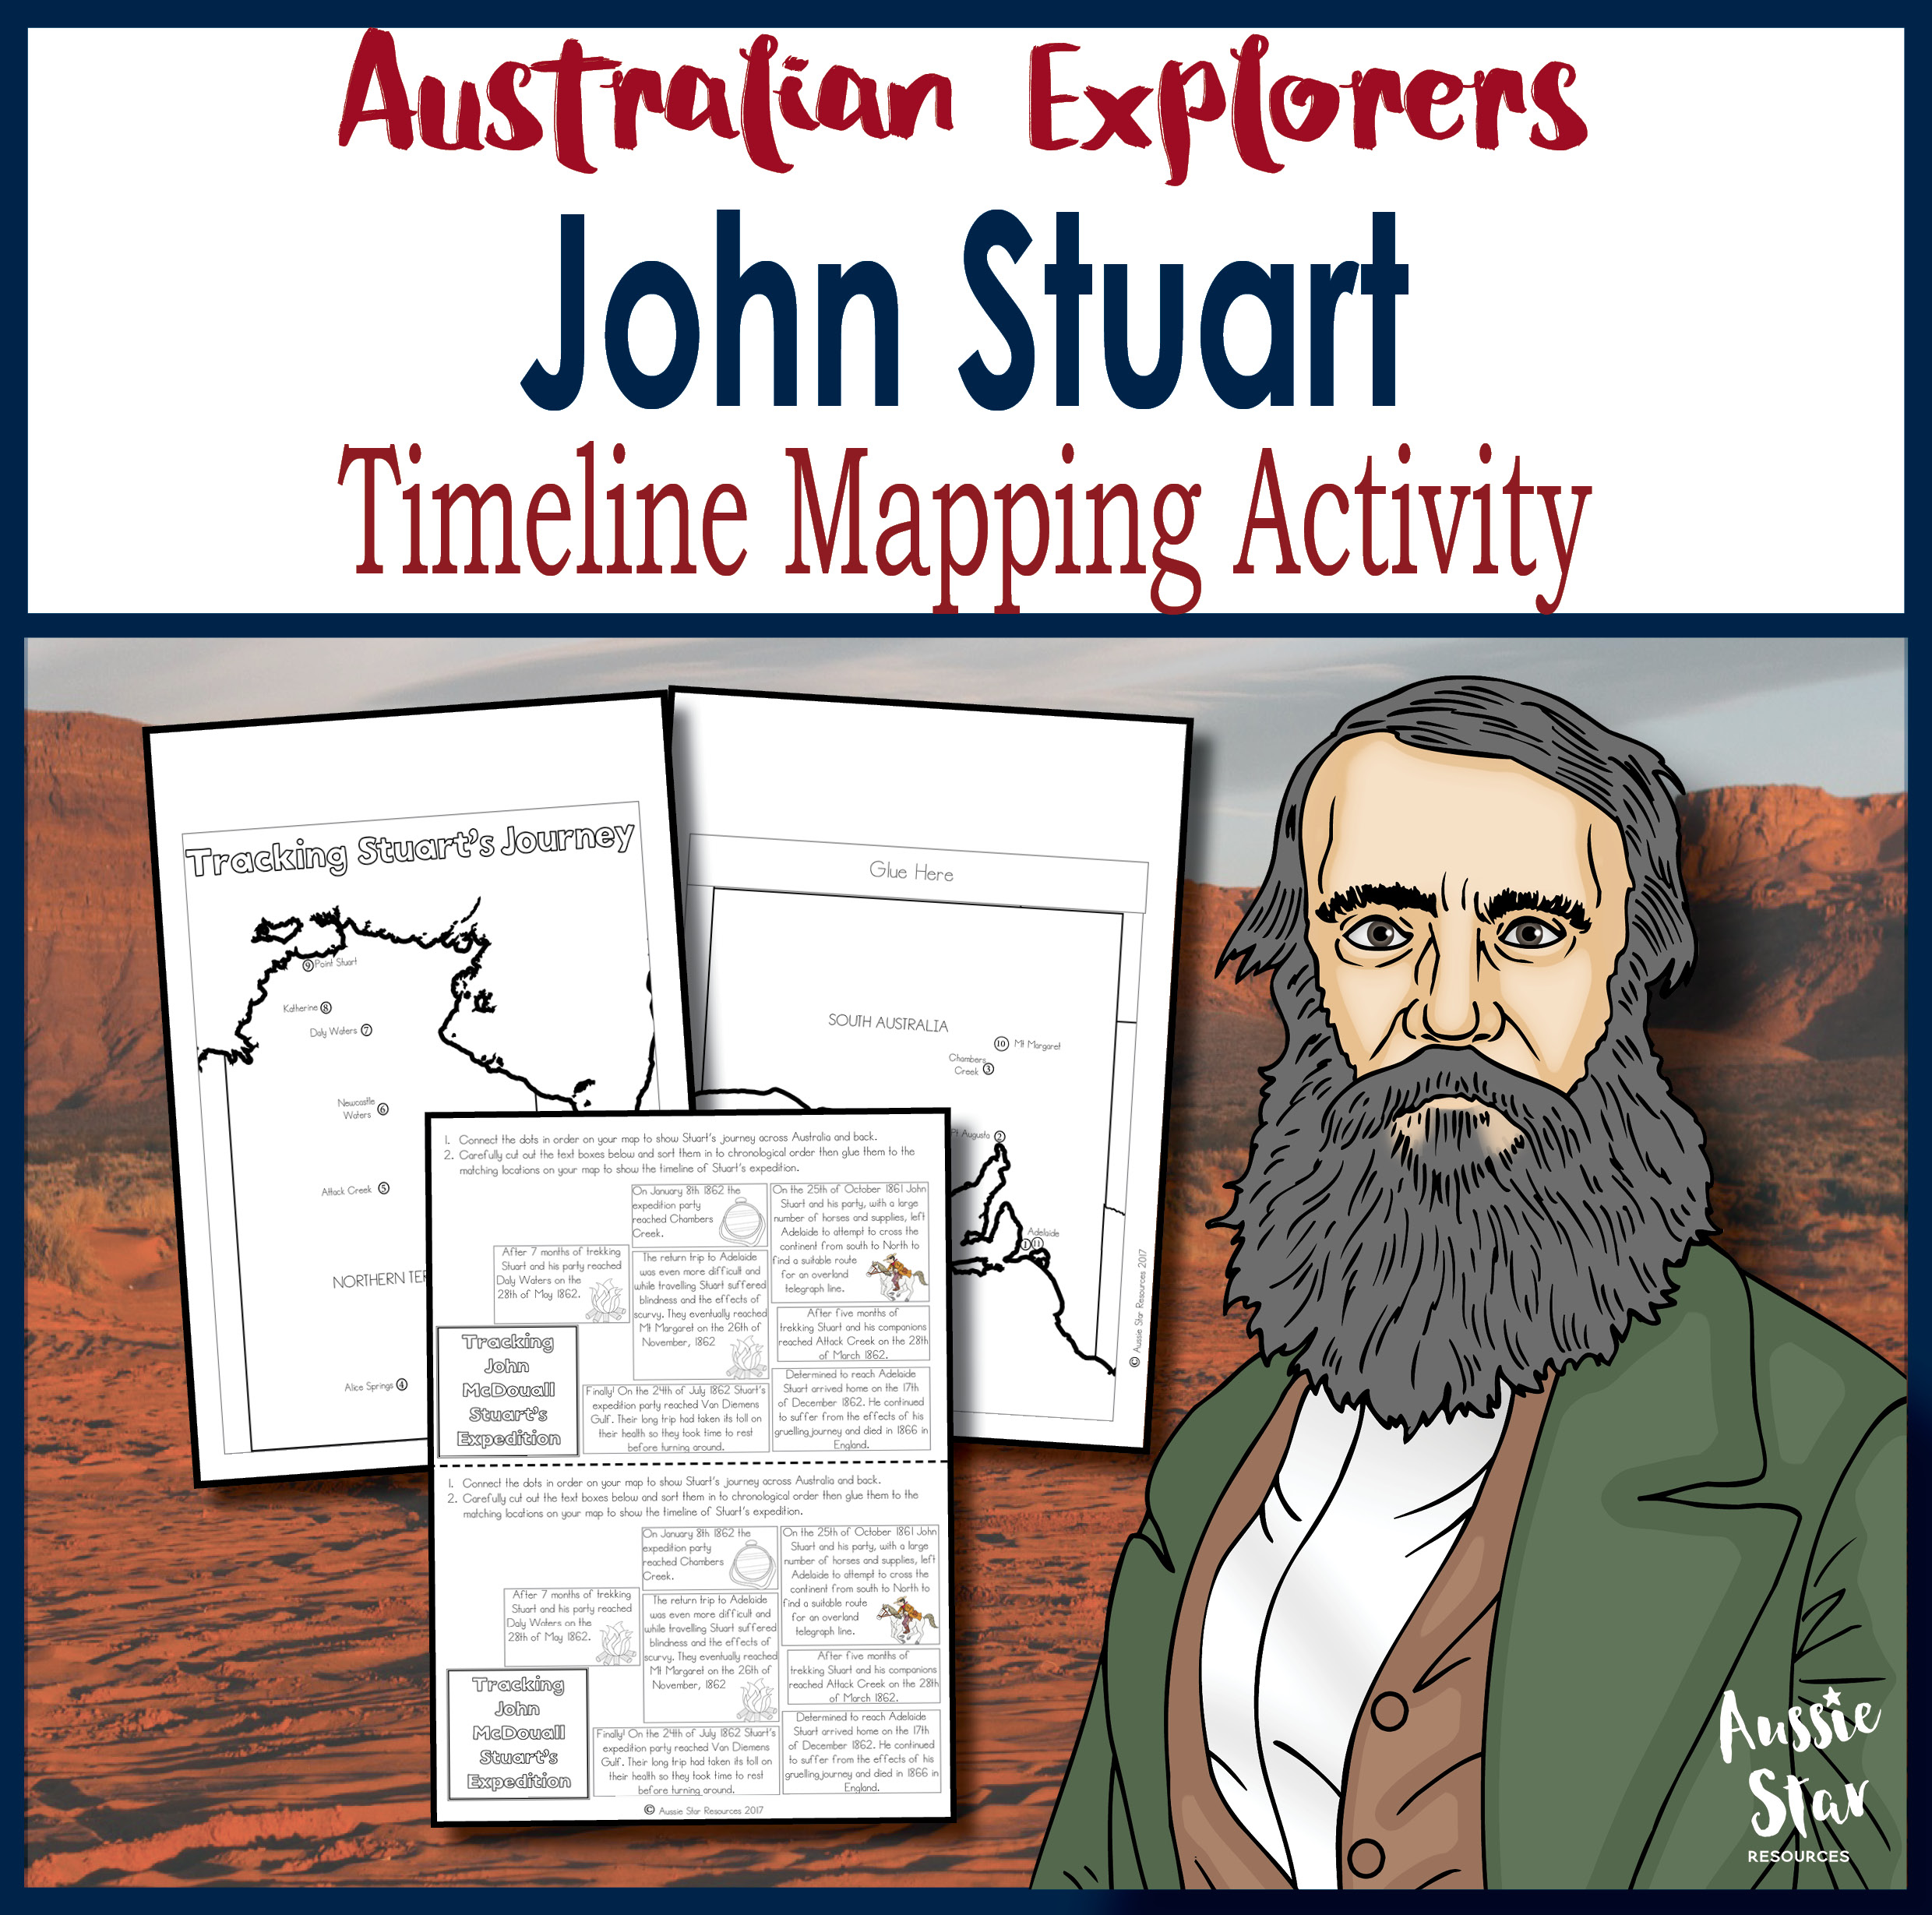 John Stuart mapping activity